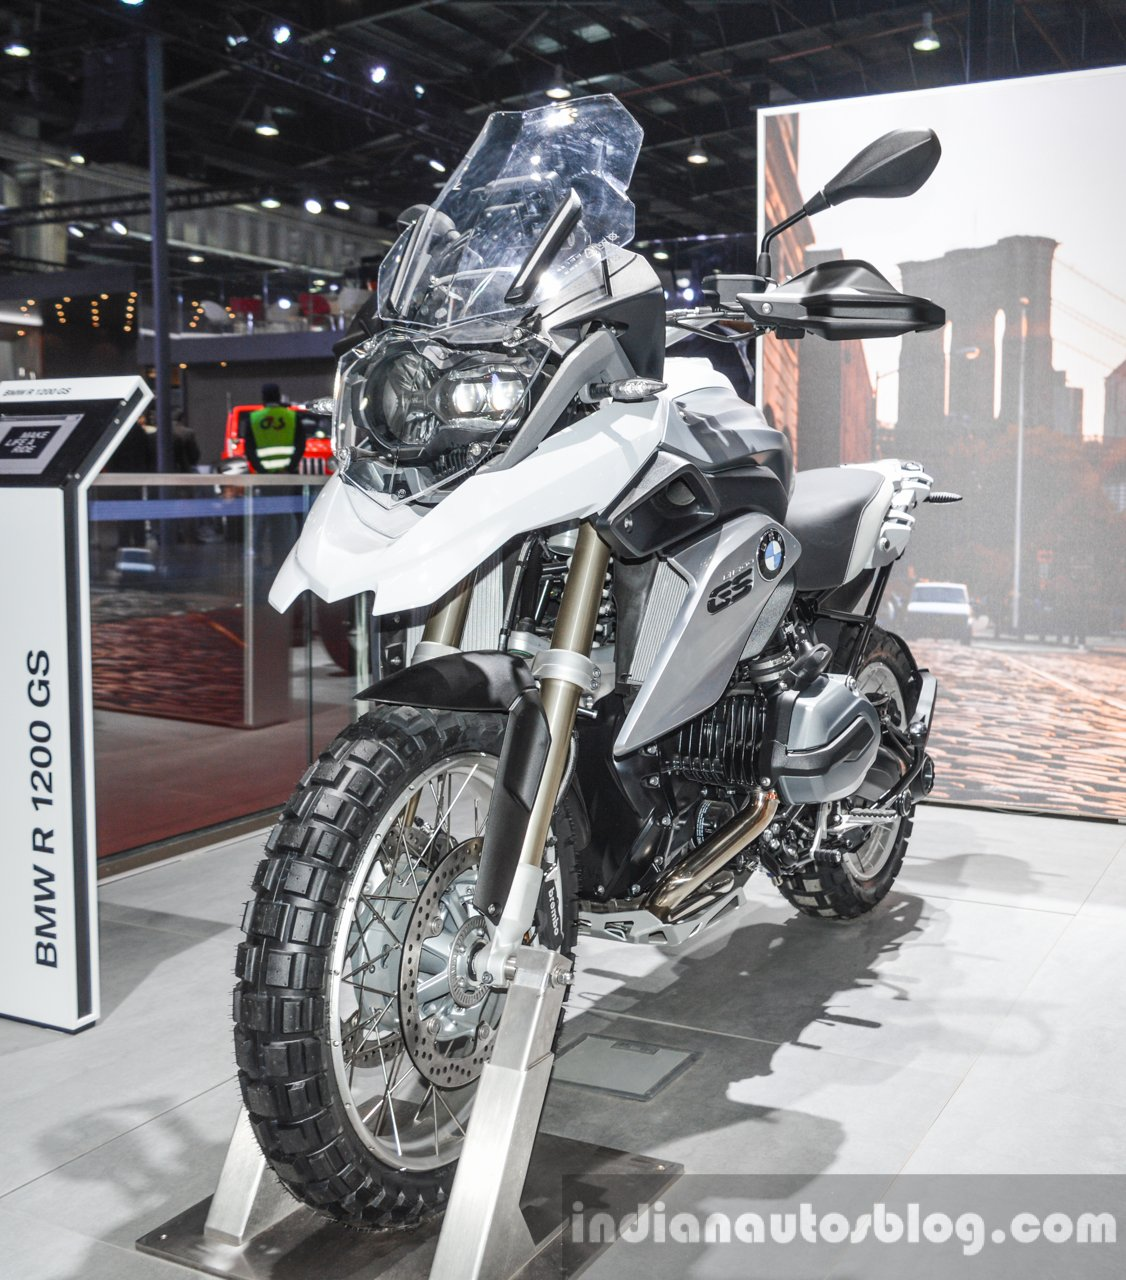 BMW R1200GS front quarter at Auto Expo 2016